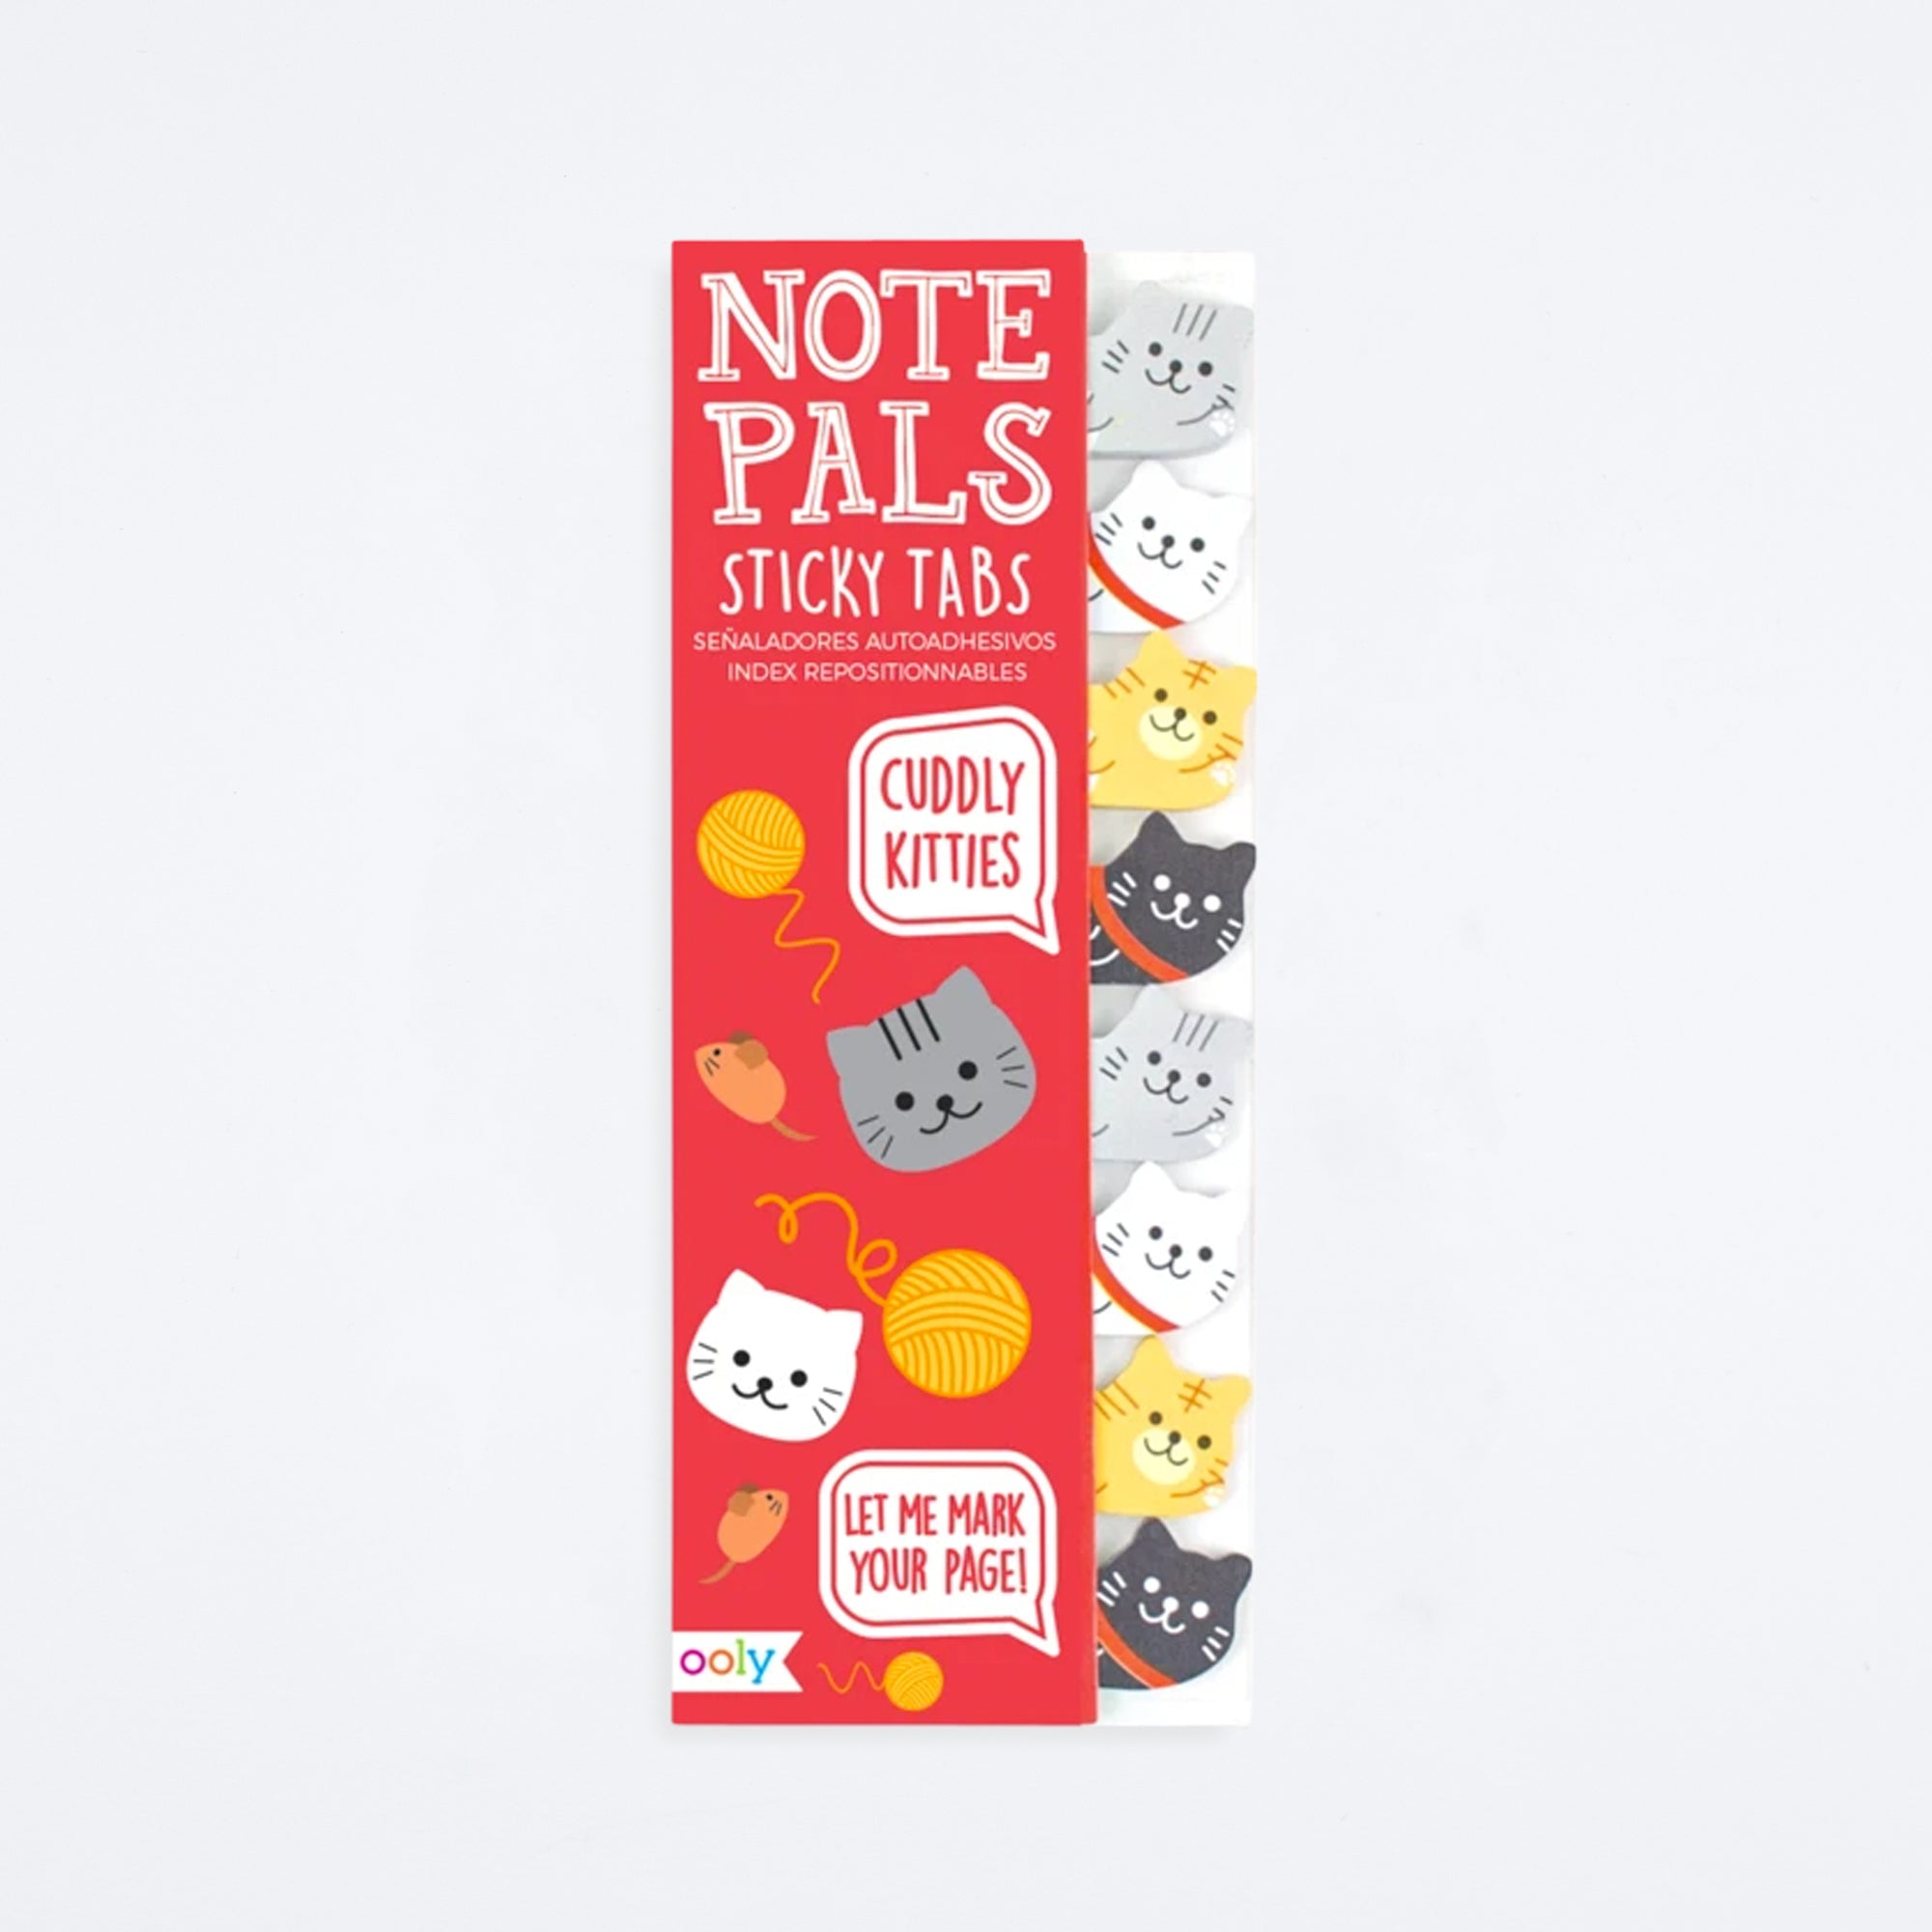 Cuddly Kitties Note Pals Sticky Notes